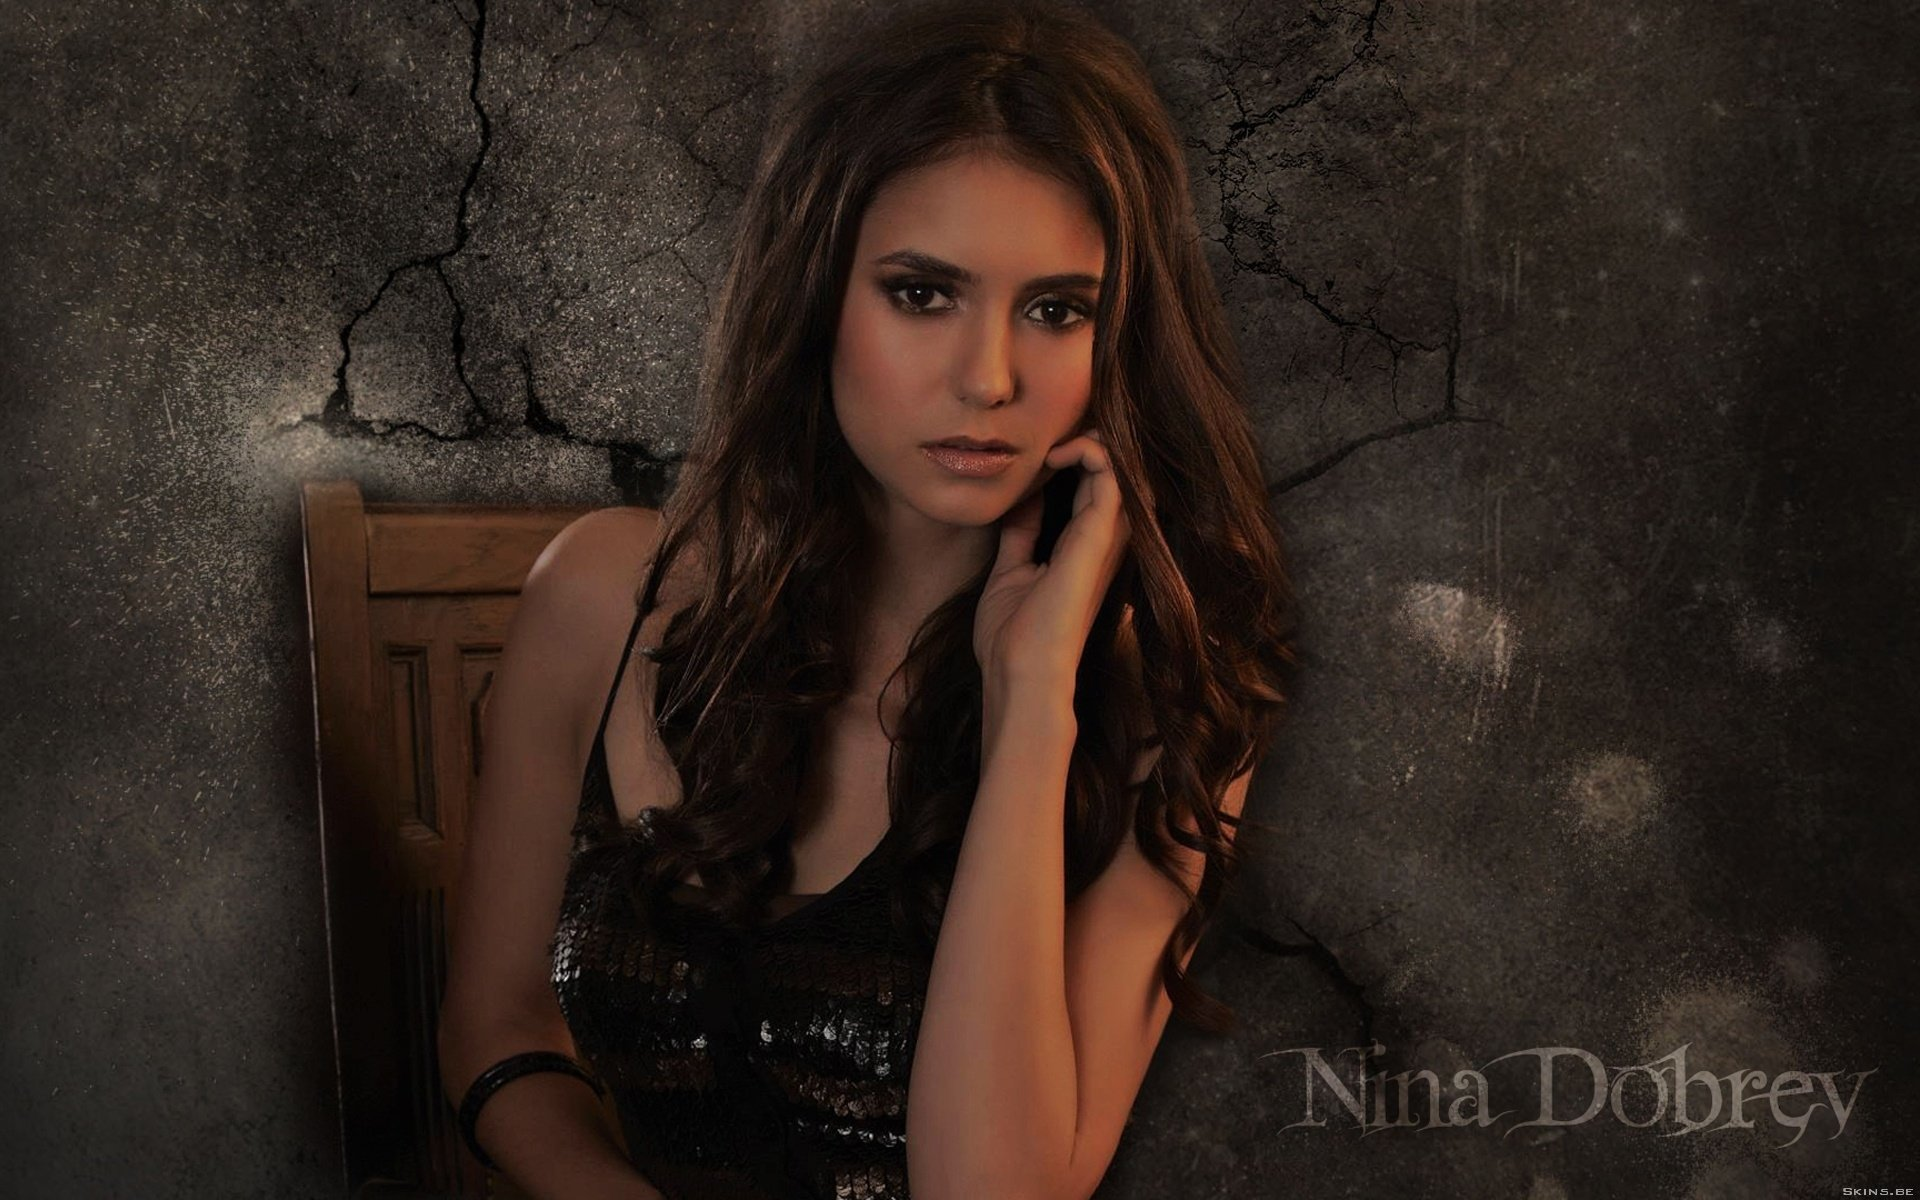 nina dobrev full hd - photo #8